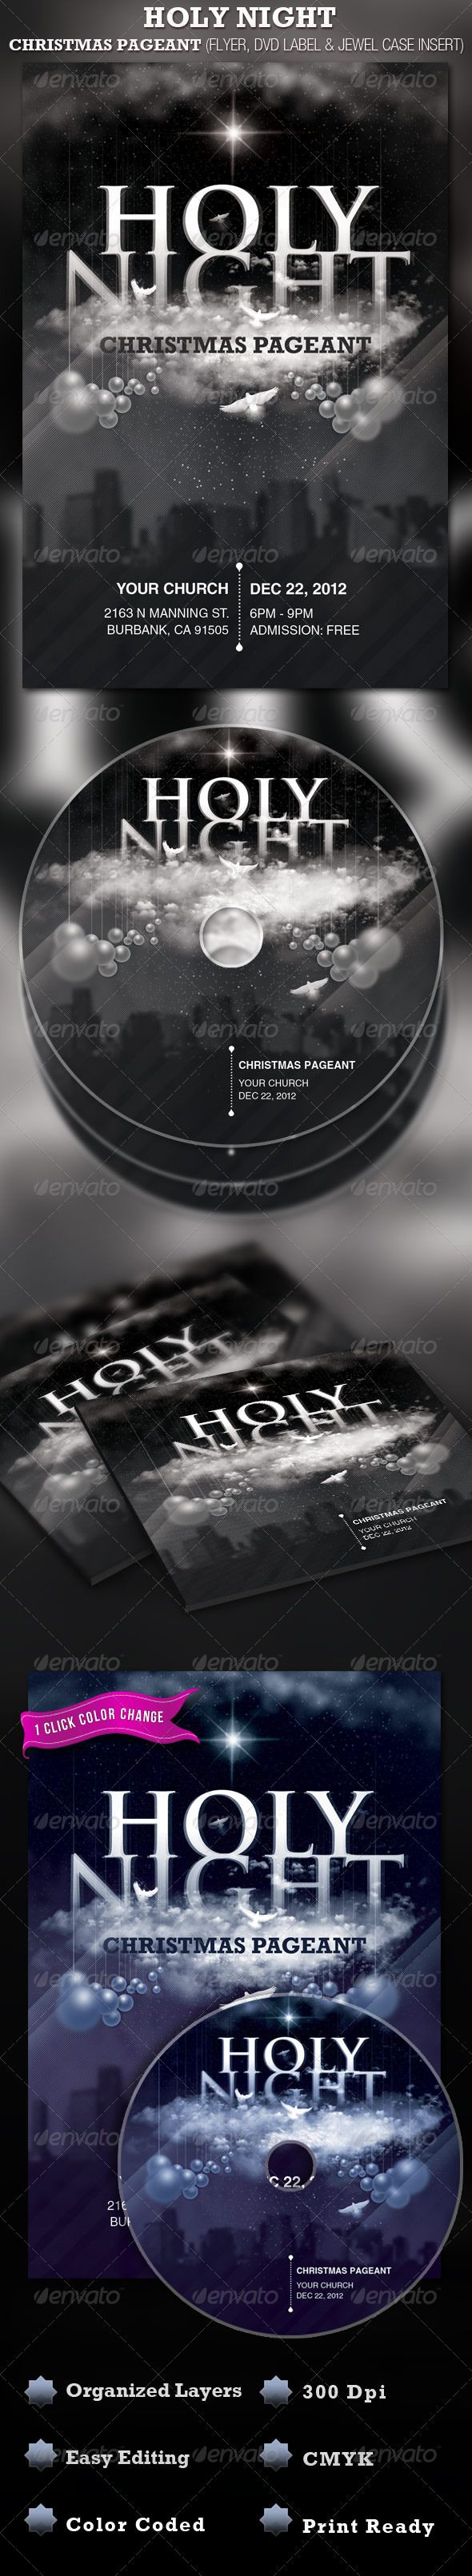 Holy Night Chirstmas Flyer and CD Label Template | Cd labels, Label ...